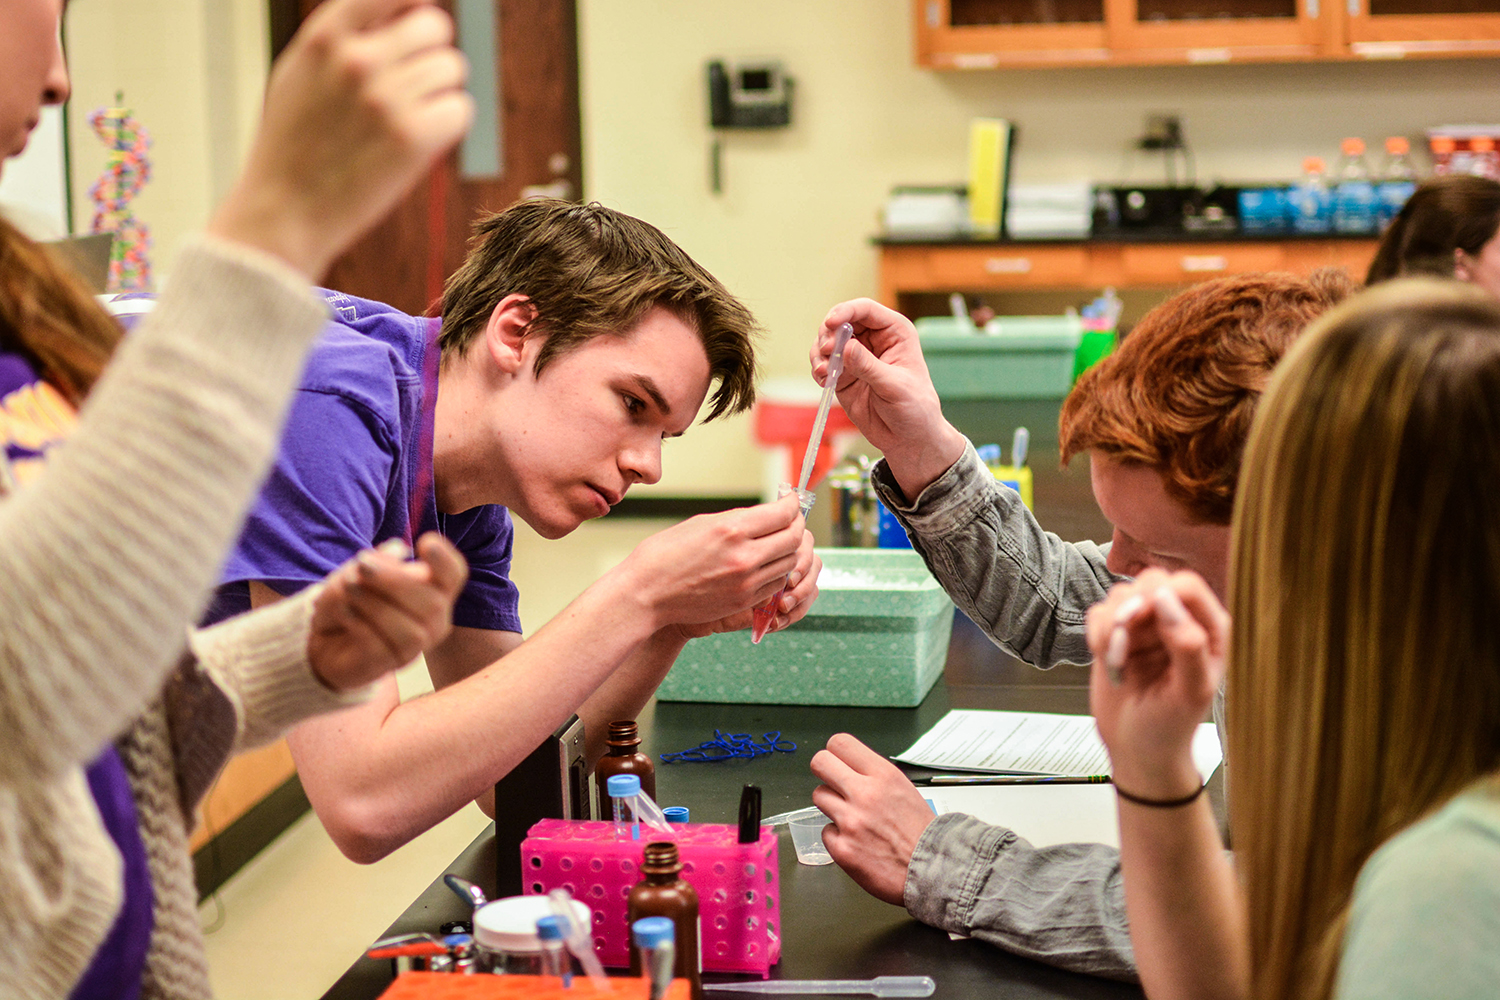 HPU students guided high schoolers from Penn-Griffin through science experiments in Congdon Hall.